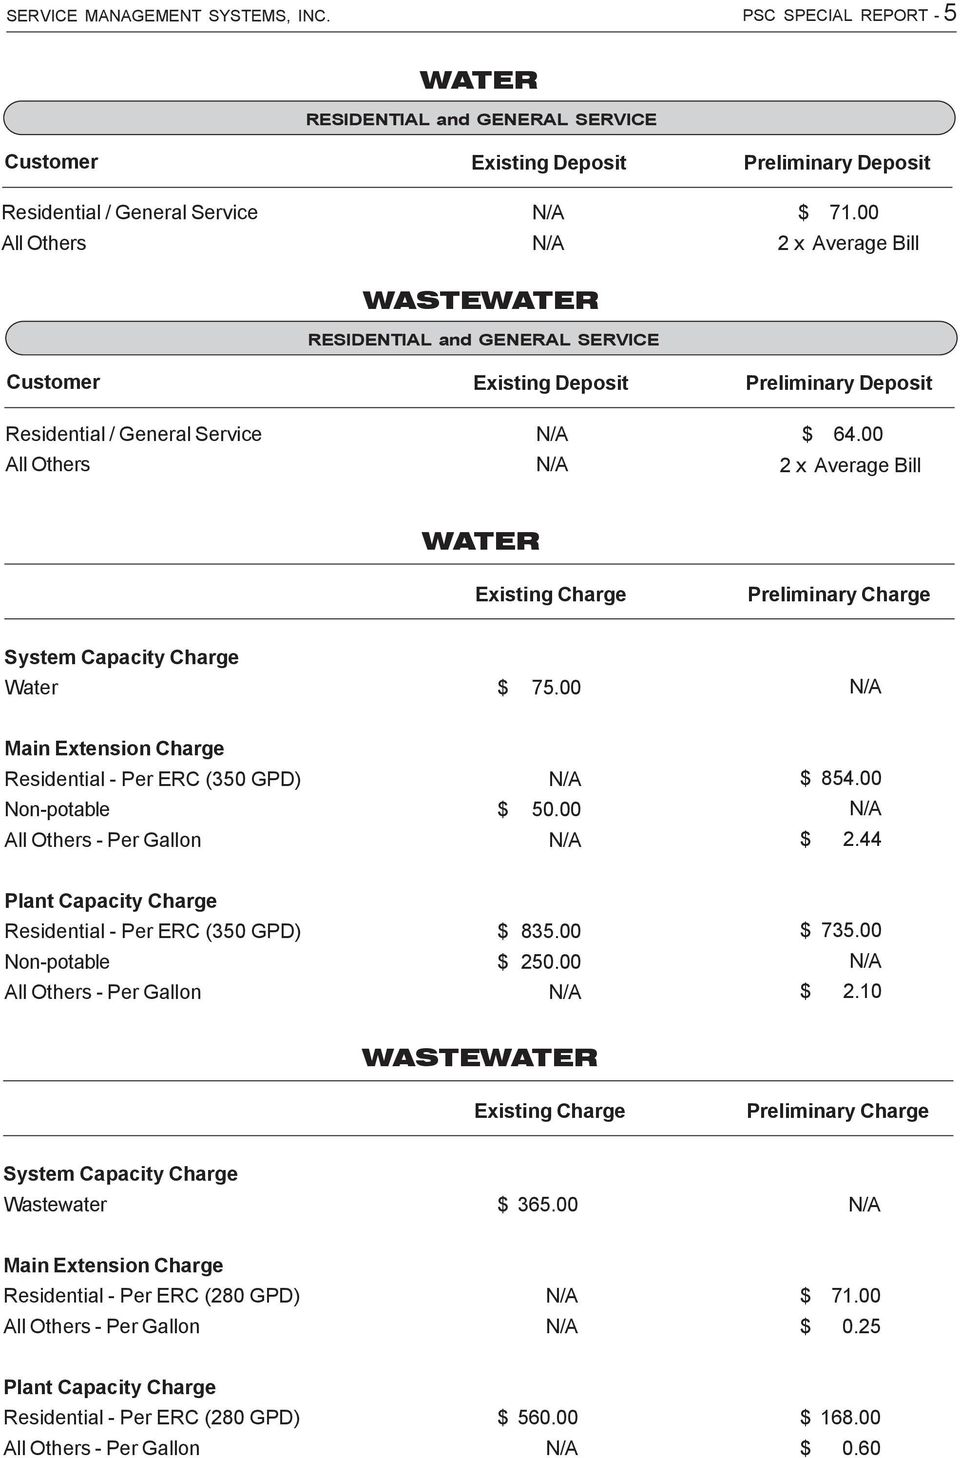 00 2 x Average Bill WATER Existing Charge Preliminary Charge System Capacity Charge Water 75.00 Main Extension Charge Residential - Per ERC (350 GPD) Non-potable 50.00 854.00 2.44 Plant Capacity Charge Residential - Per ERC (350 GPD) Non-potable 835.